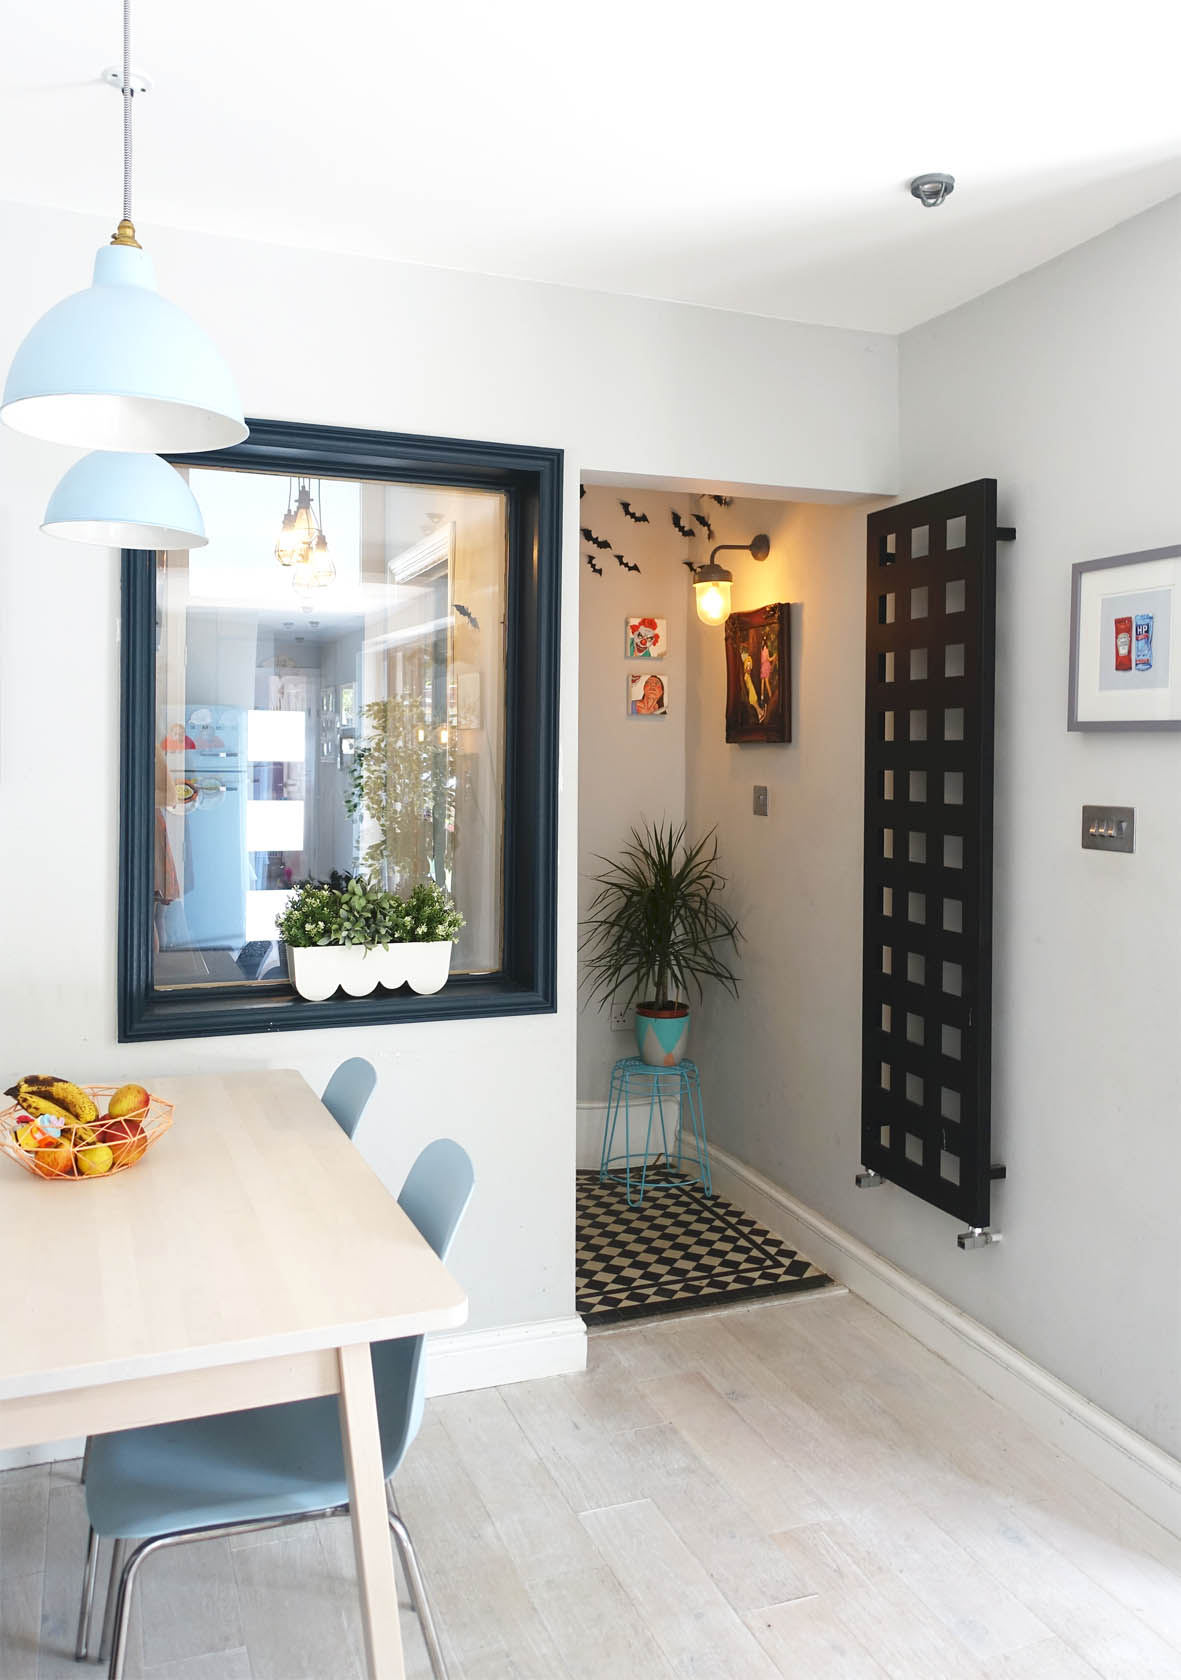 A compact colourful dining area